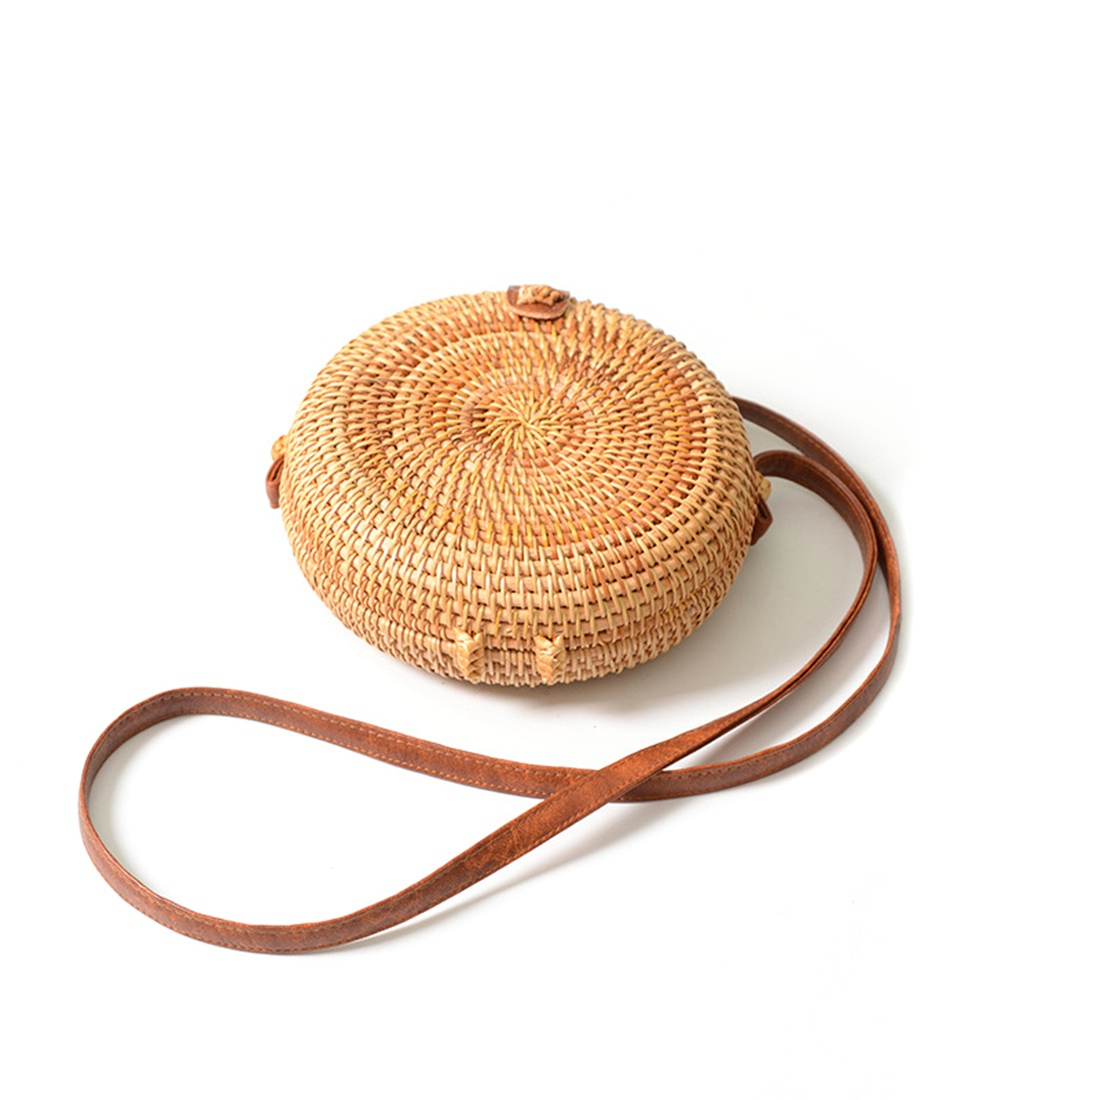 DCOS INS new ladies hand-woven bag round rattan retro literary hand-woven leather buckle package Bohemia Beach Messenger bag new fashion ladies hand woven bamboo bag retro beach round bamboo package bohemian shoulder messenger bag